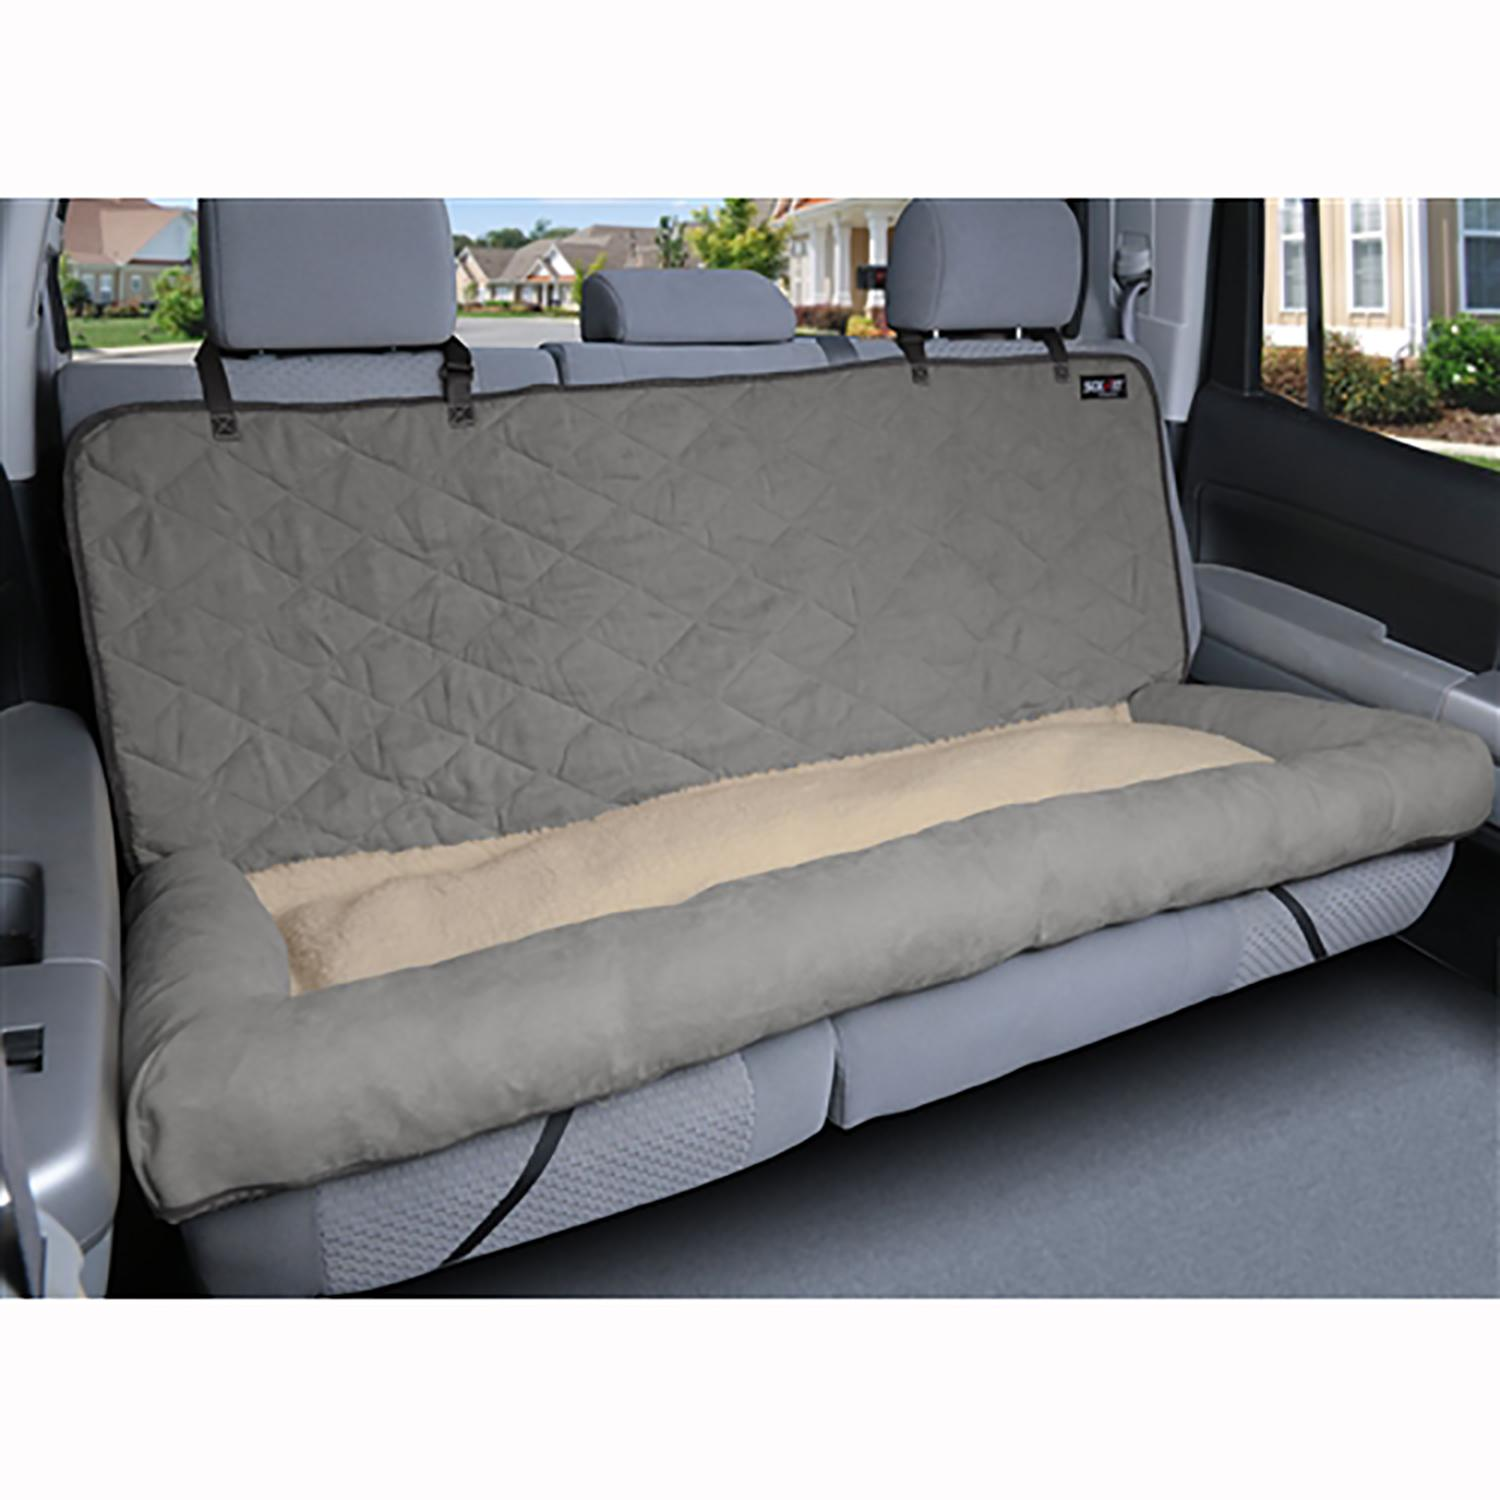 Solvit Car Cuddler Dog Seat Cover - Gray